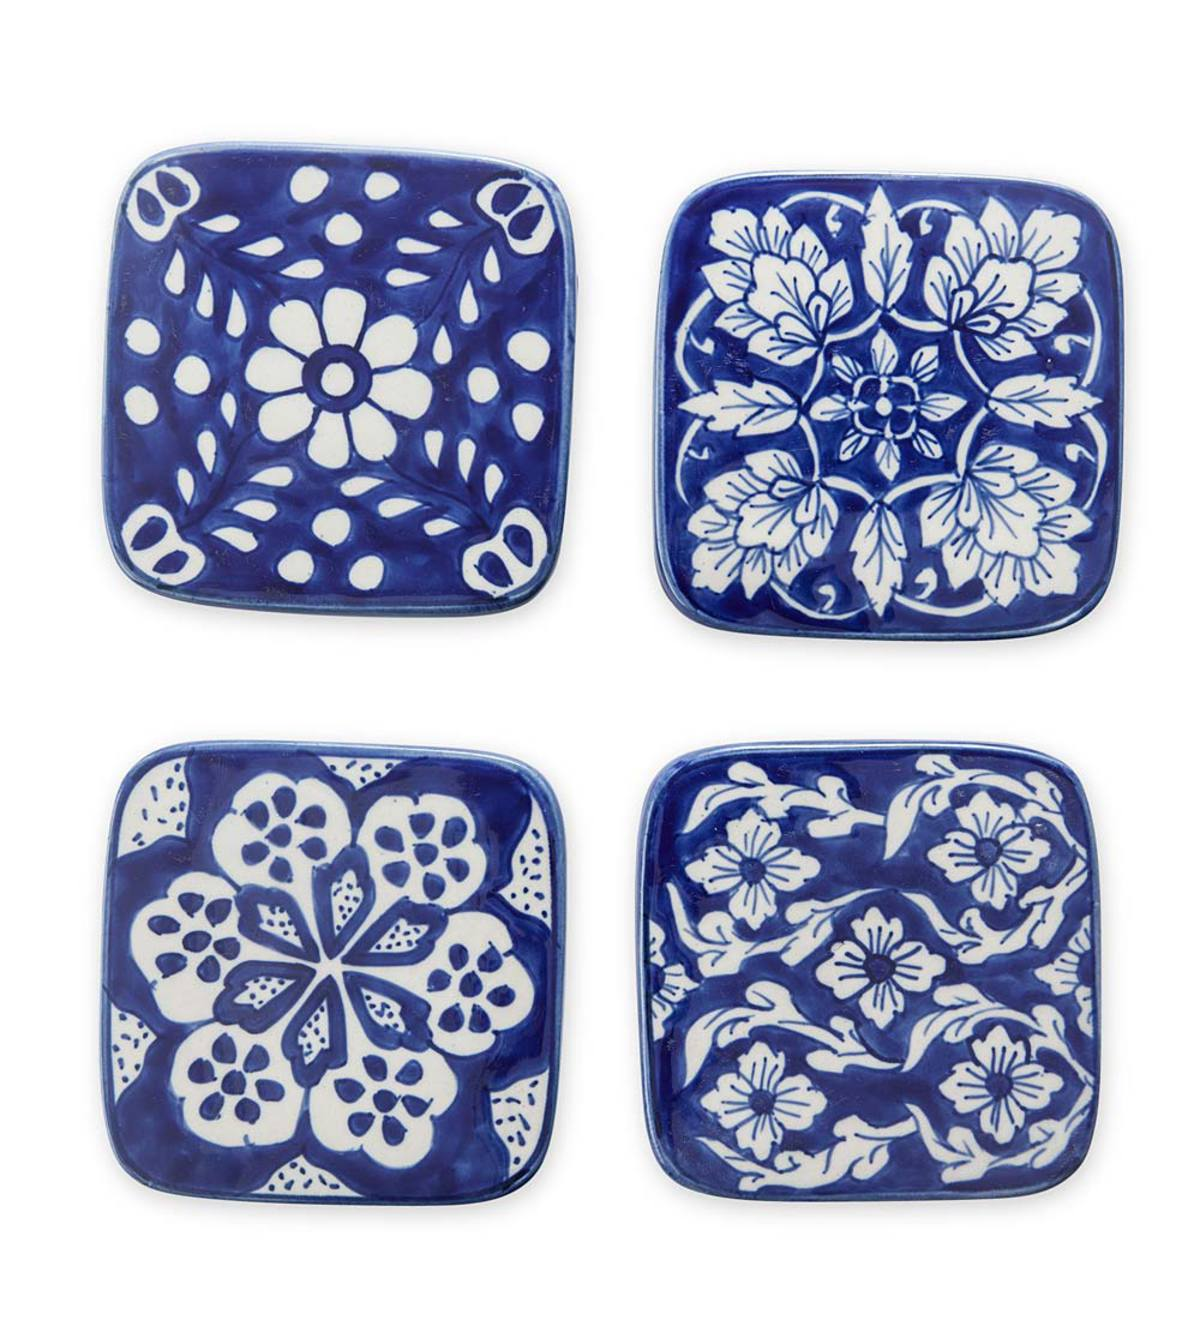 Ceramic Coasters, Set of 4 - Blue